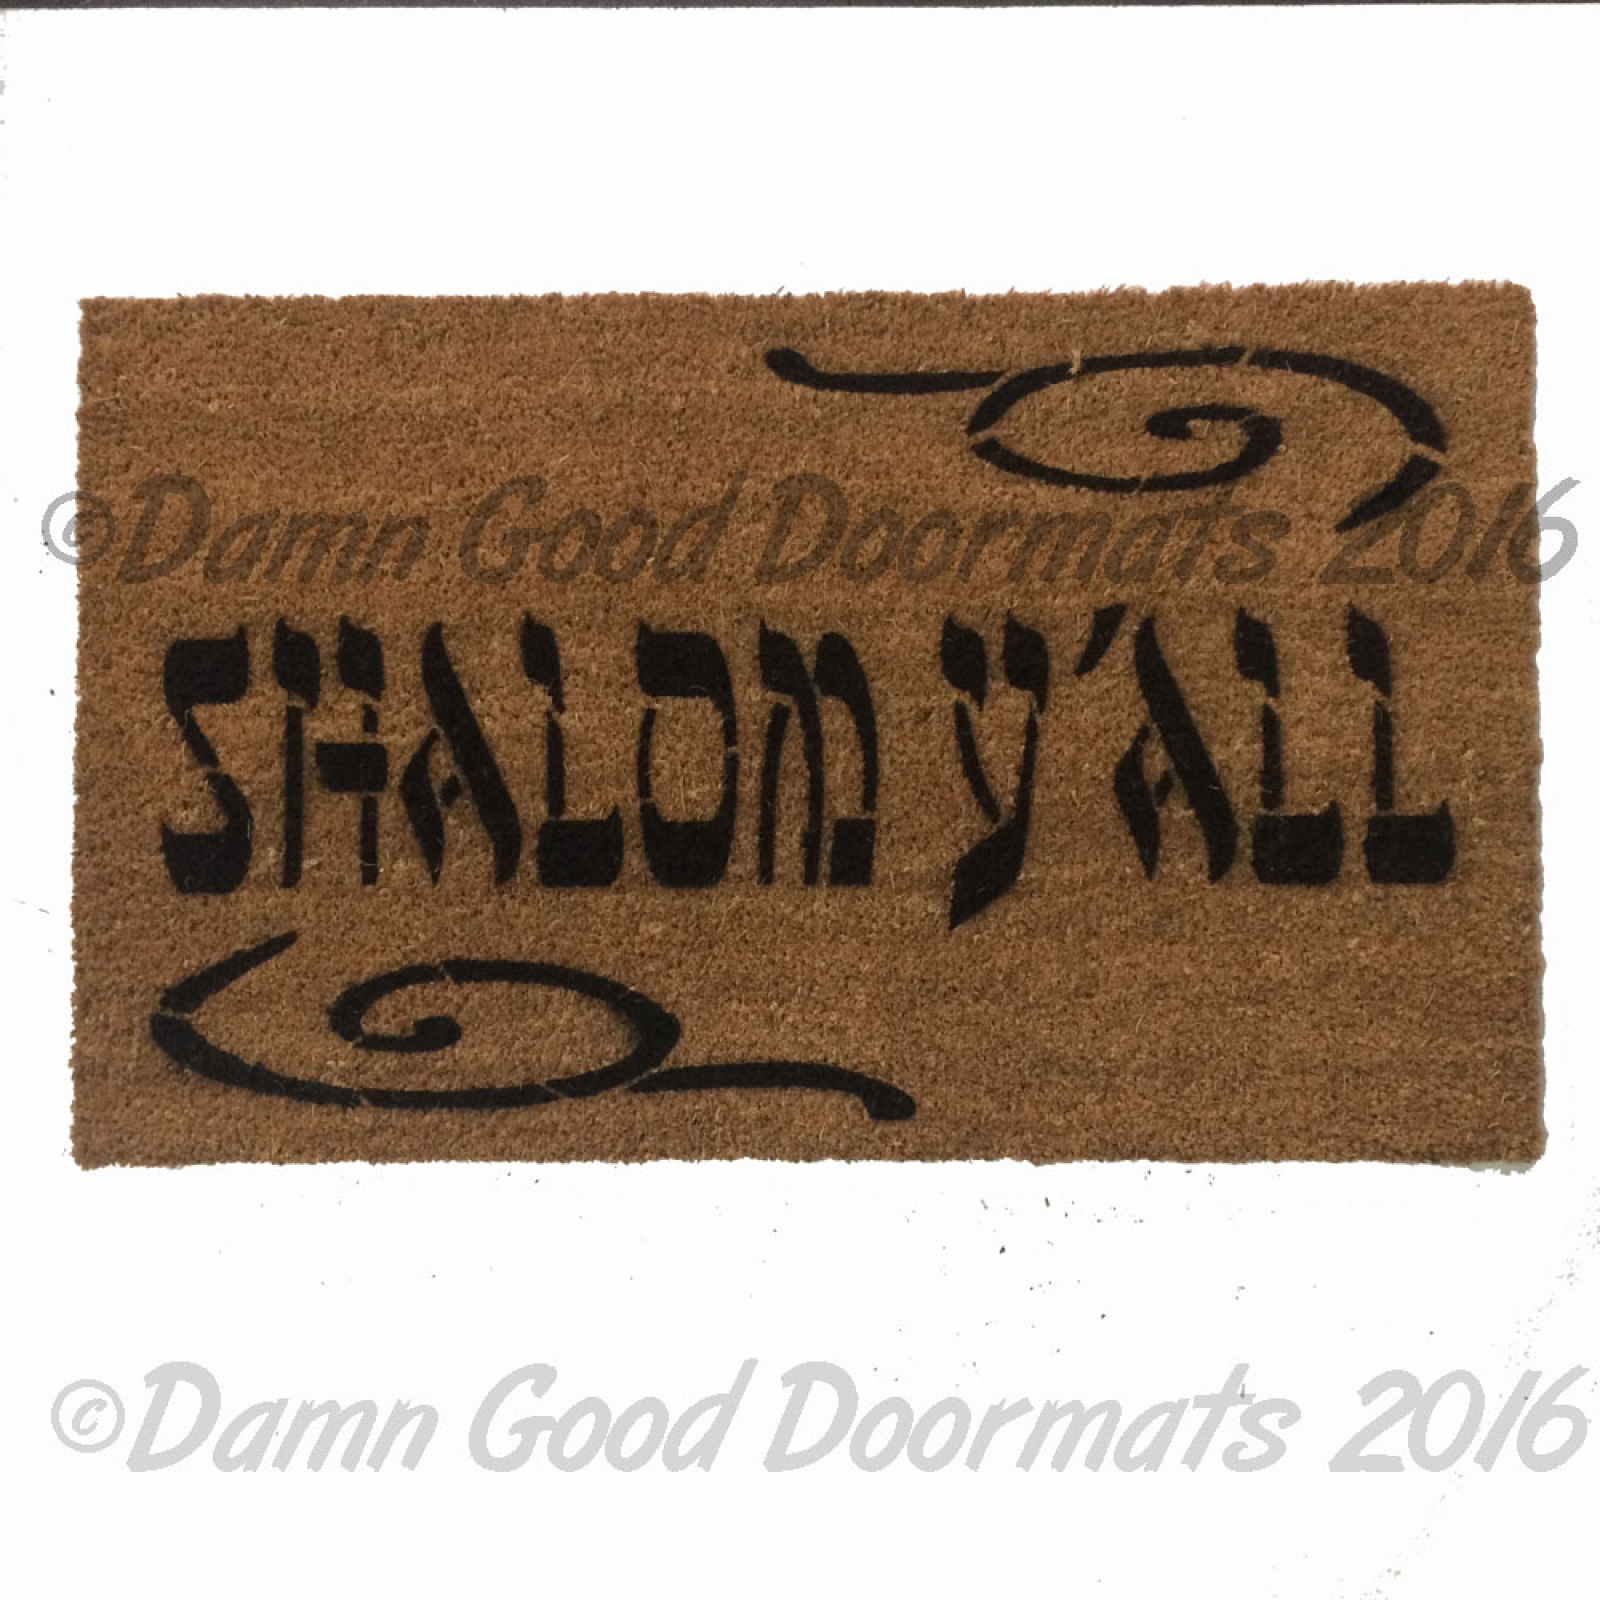 Shalom Y All Jewish Novelty Welcome Doormat By Damn Good